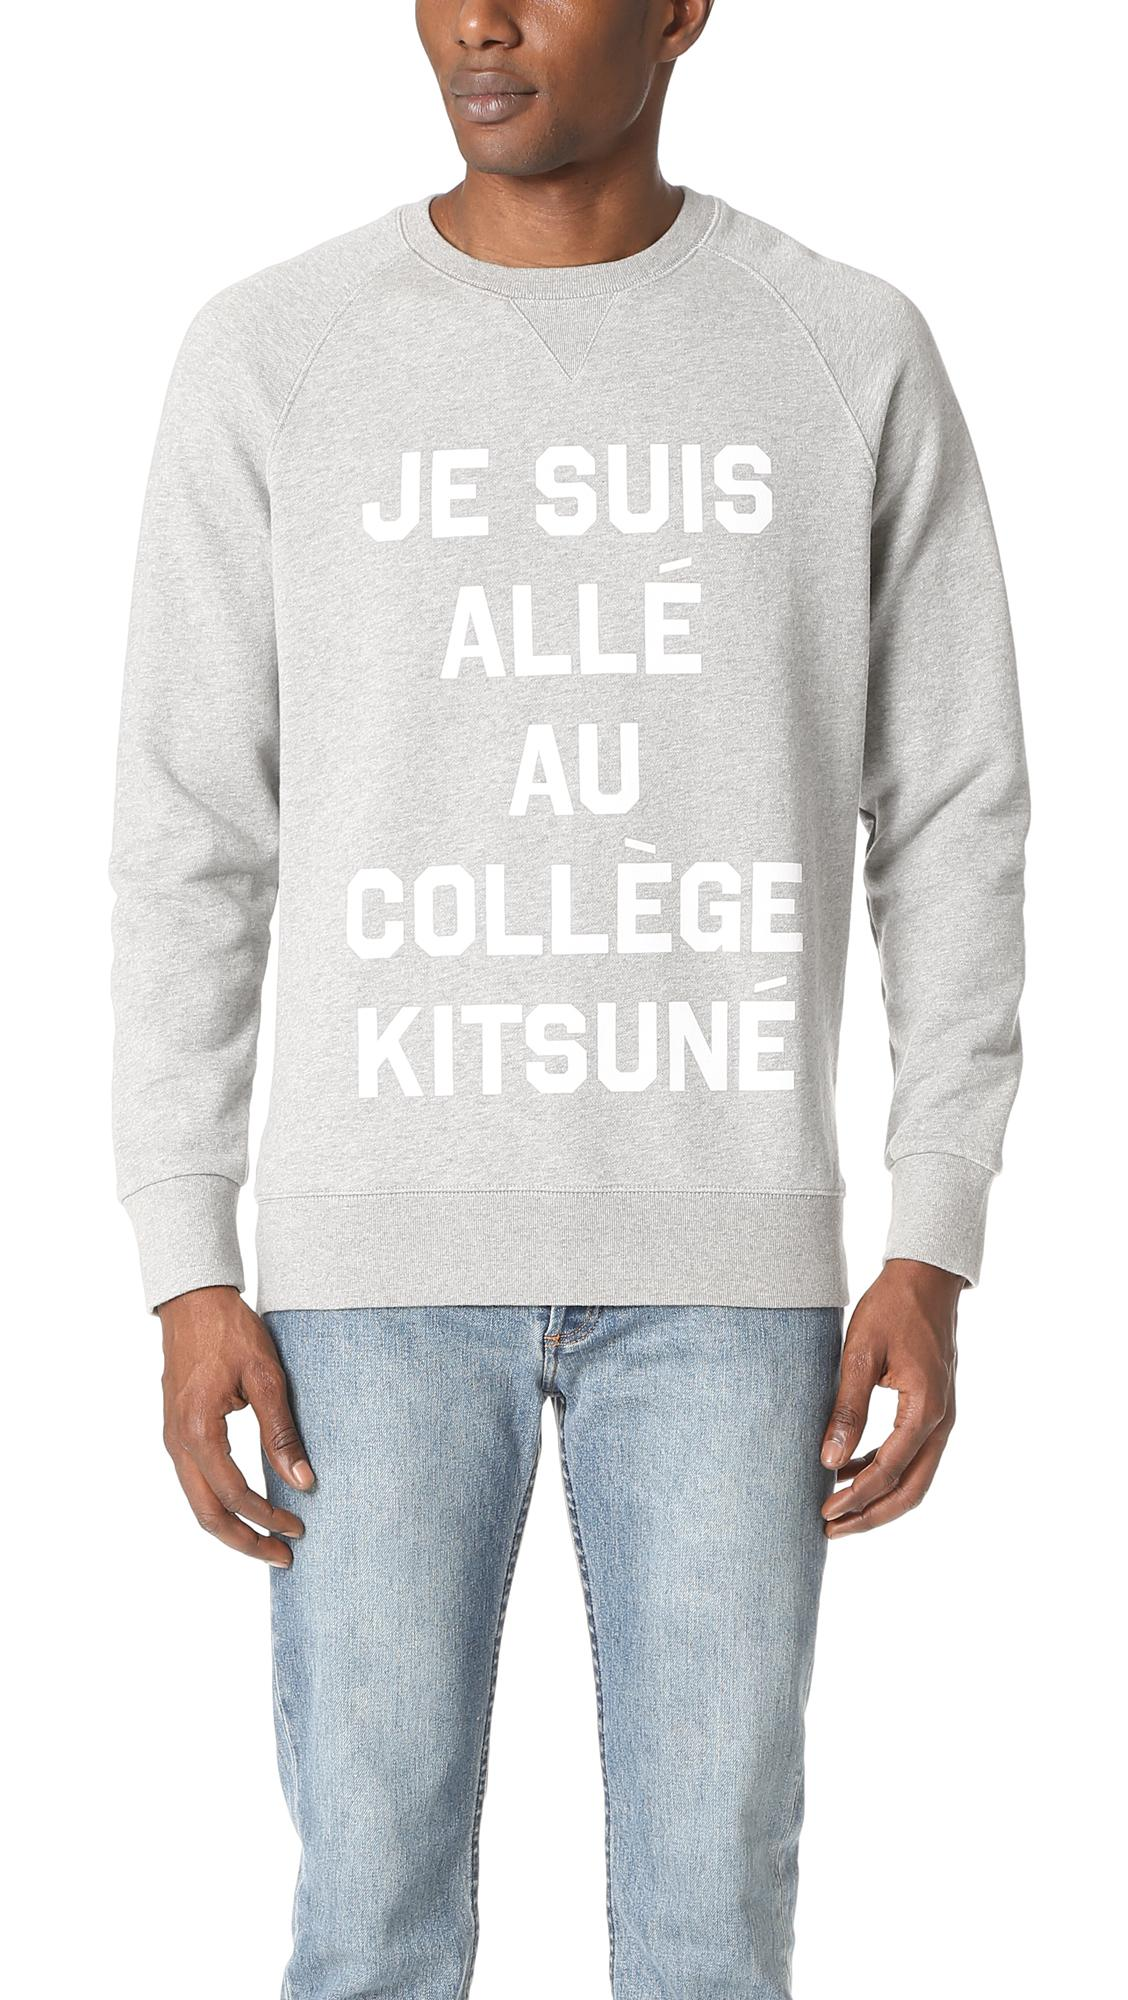 lyst maison kitsun je suis alle sweatshirt in gray for men. Black Bedroom Furniture Sets. Home Design Ideas